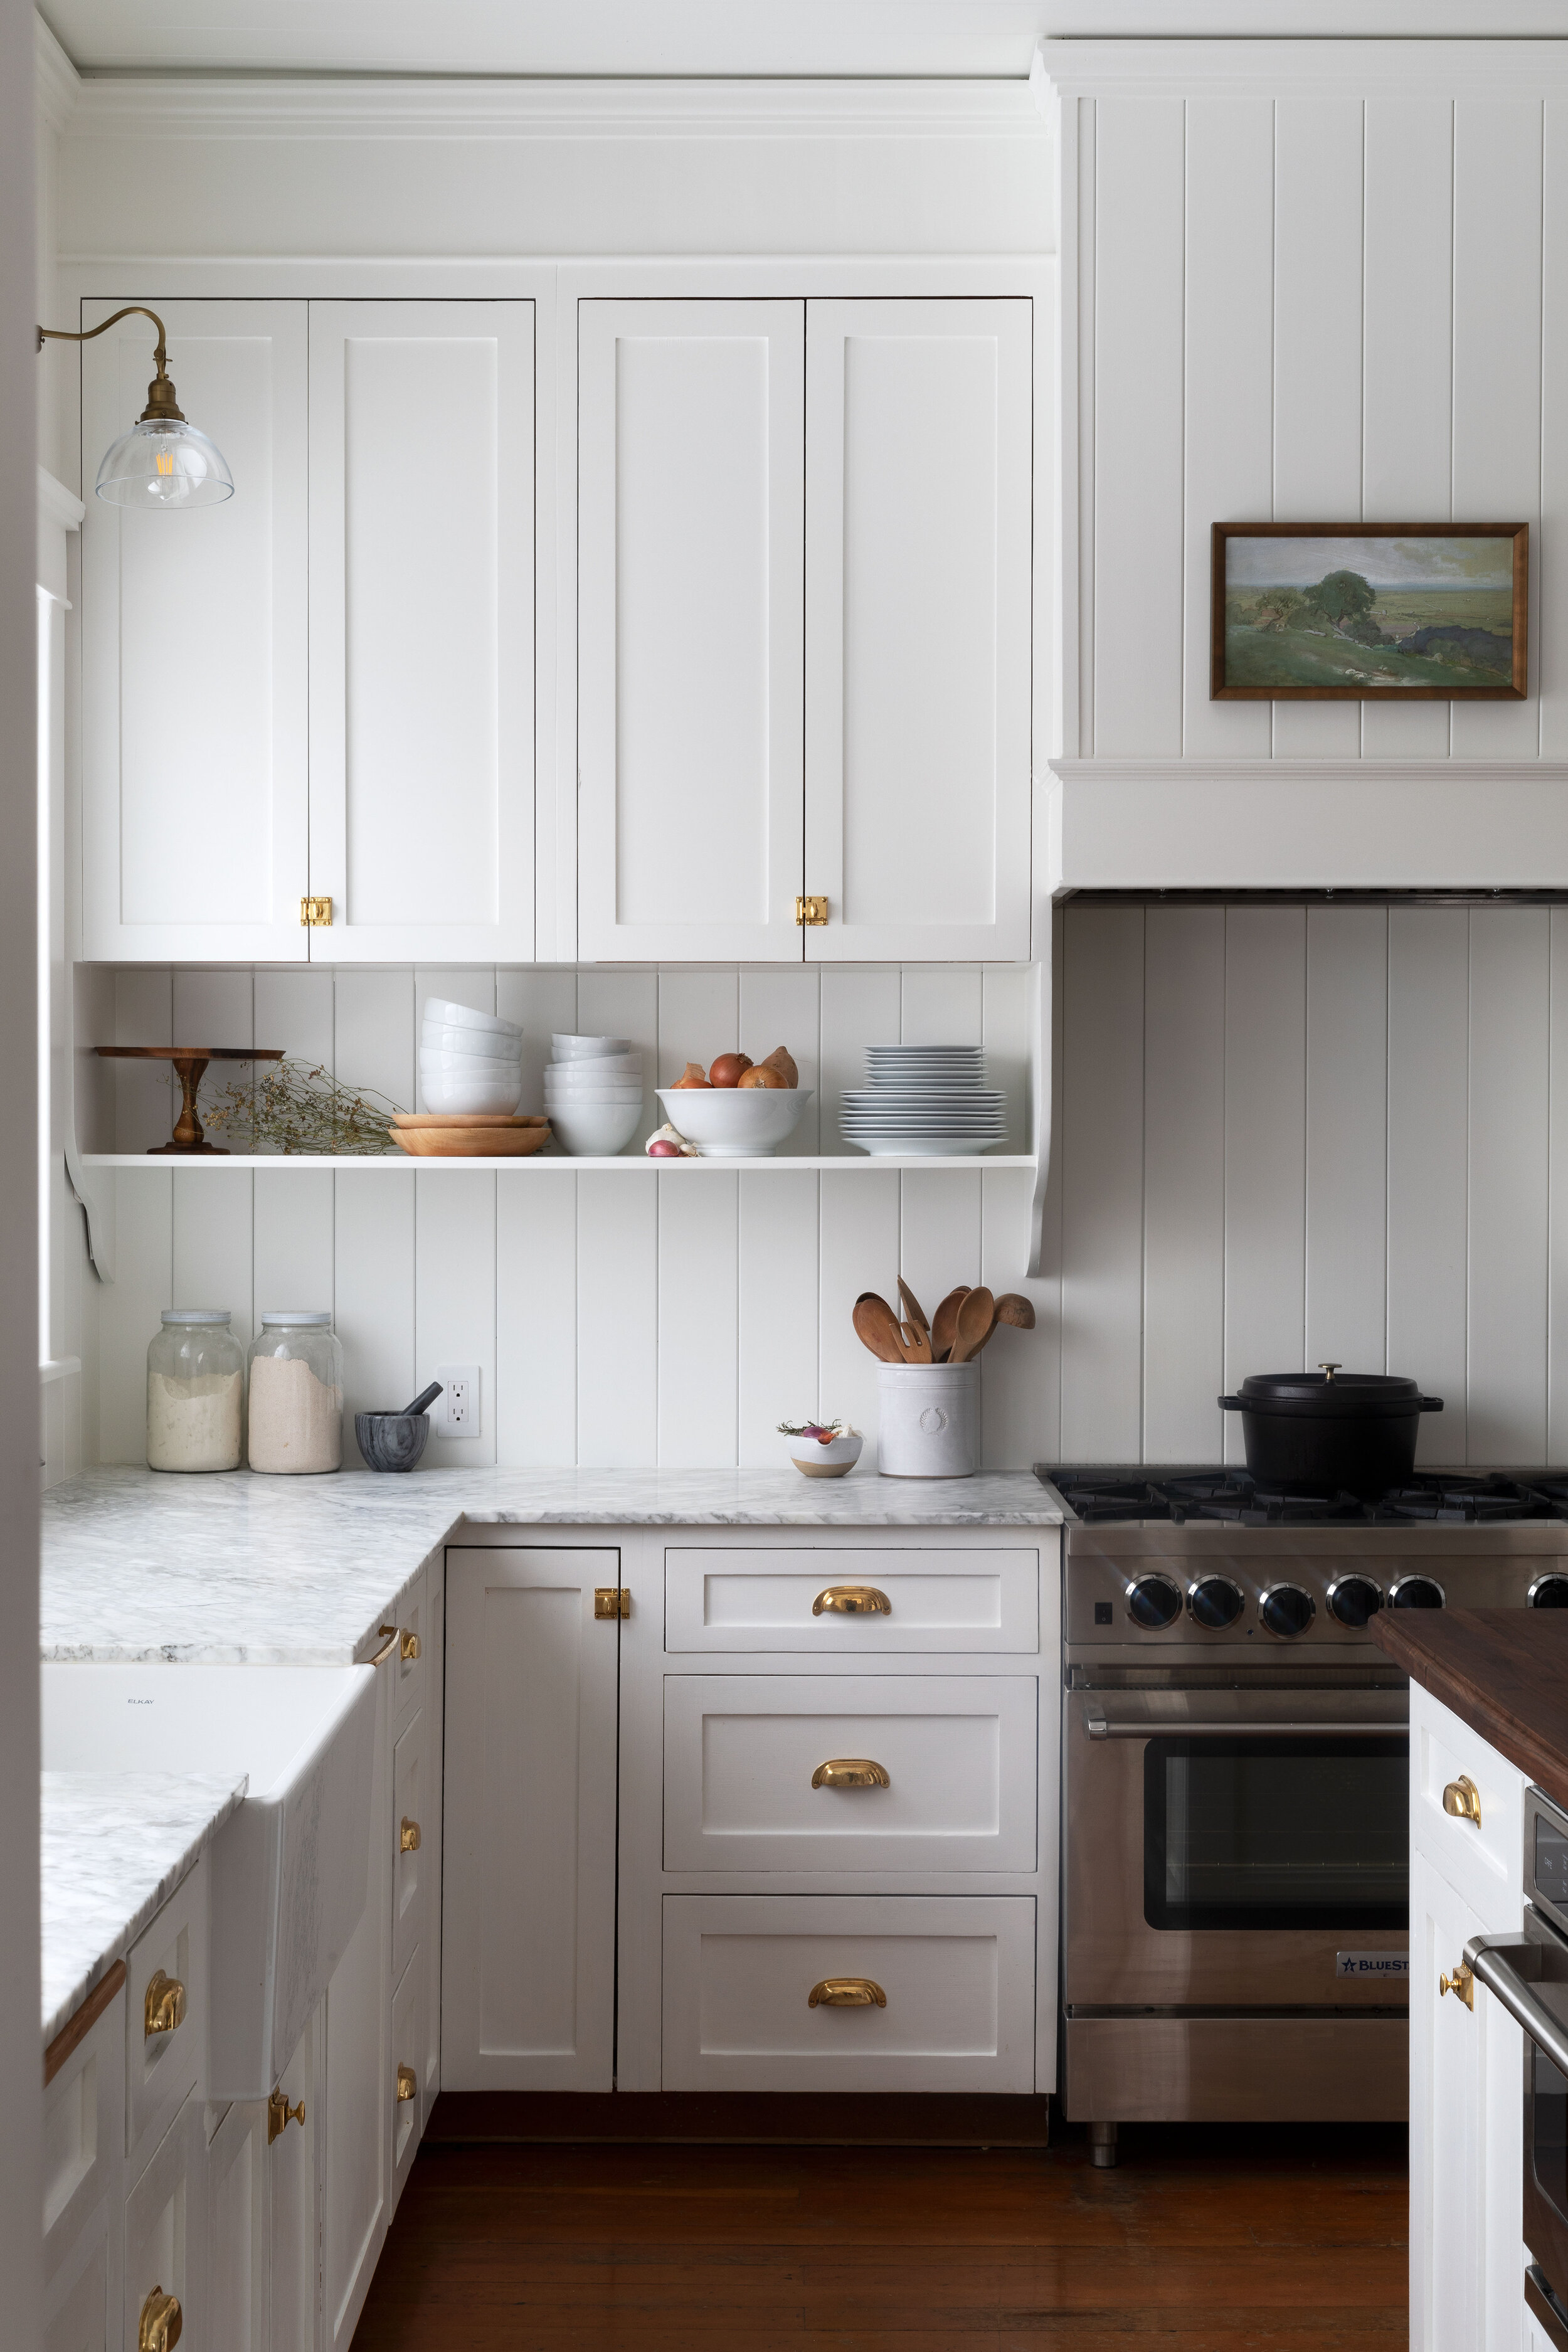 The Grit and Polish - Farmhouse Country Kitchen Reveal 3.0 21 web.jpg